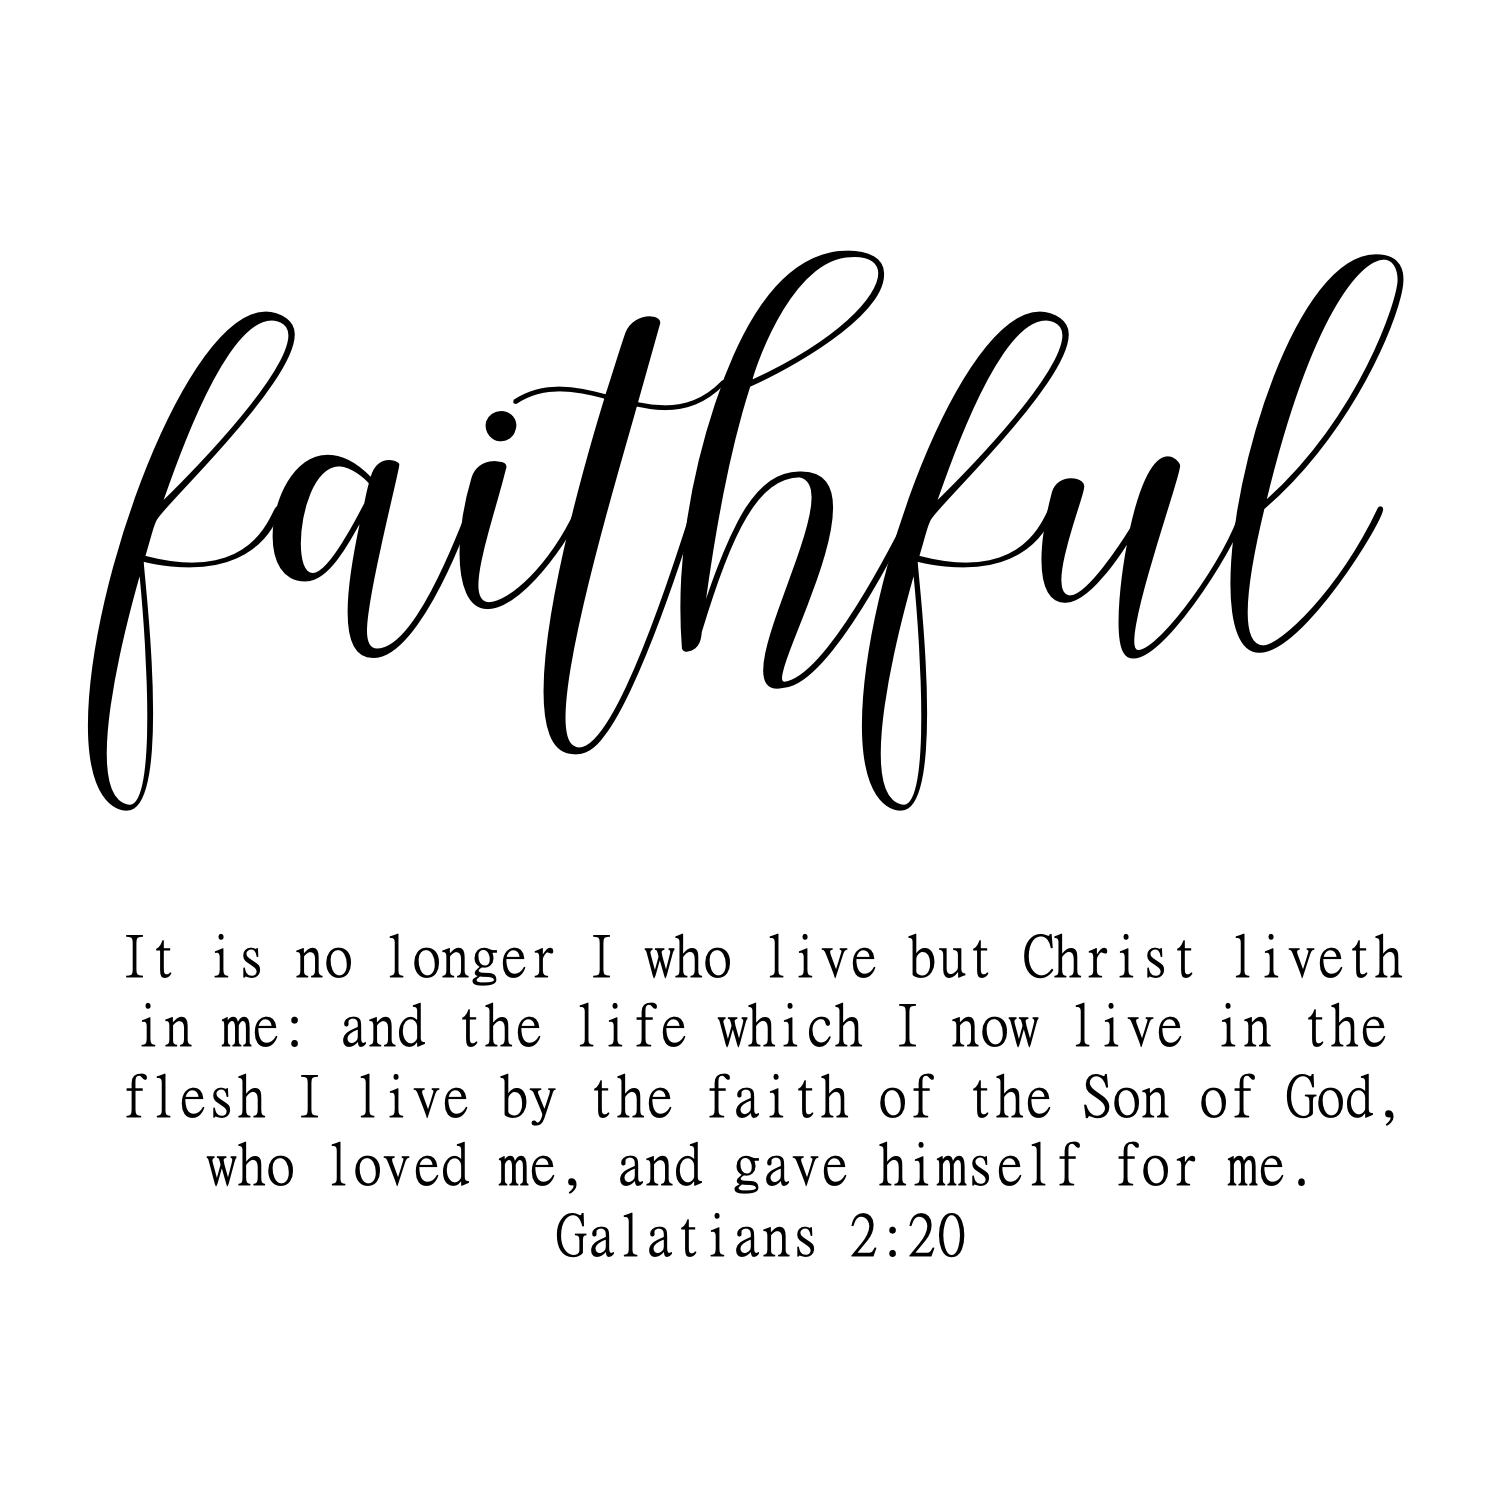 http://www.jedicraftgirl.com/wp-content/uploads/2020/04/faithful.png